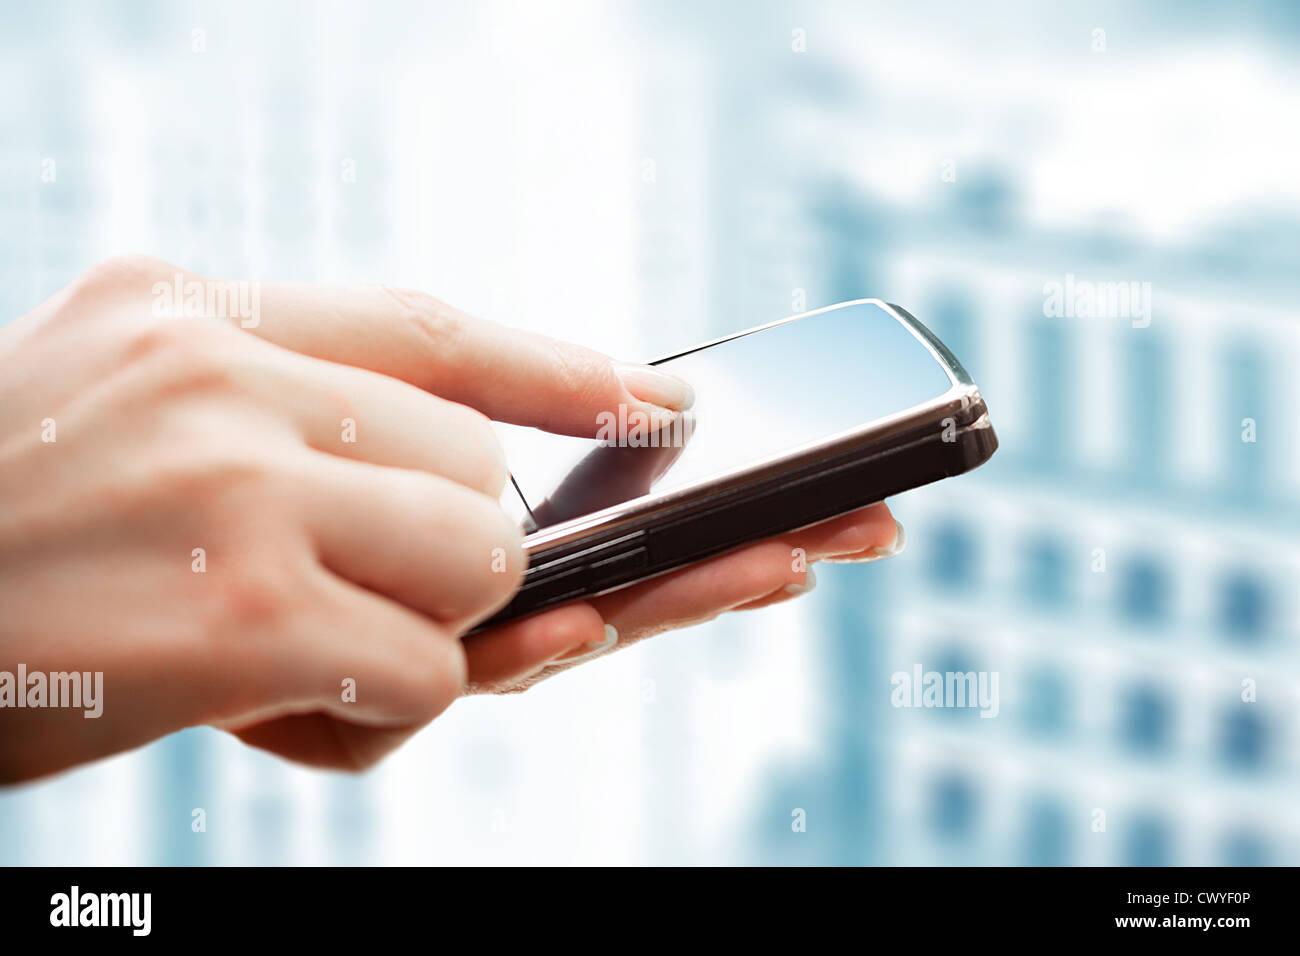 Closeup of female hands using a smart phone. City background. - Stock Image